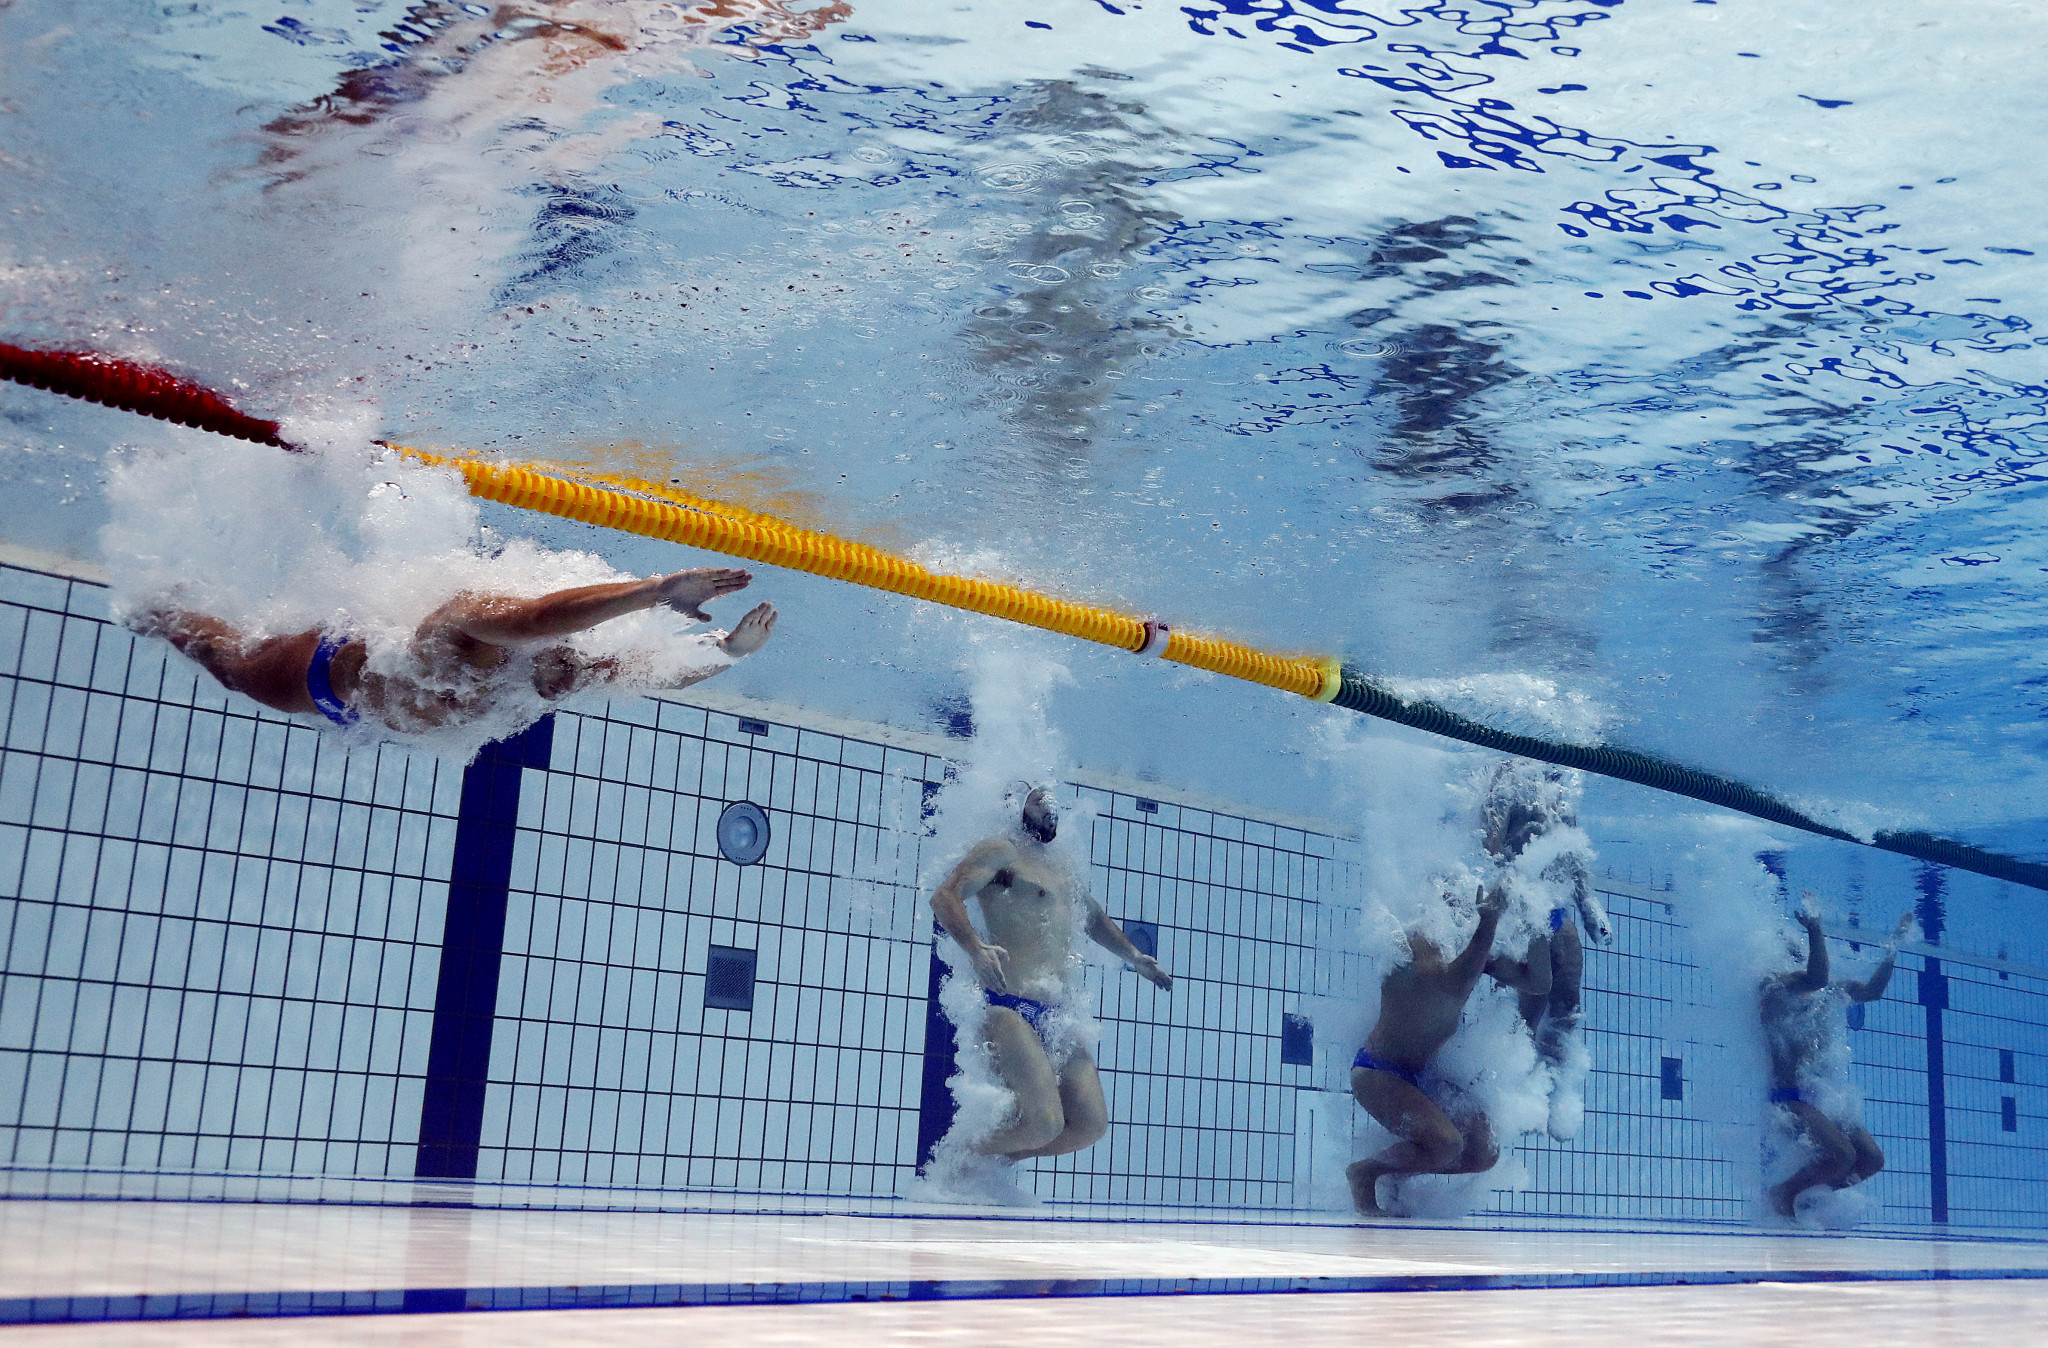 Defending champions Greece eliminated from FINA Water Polo Under-19 World Championship